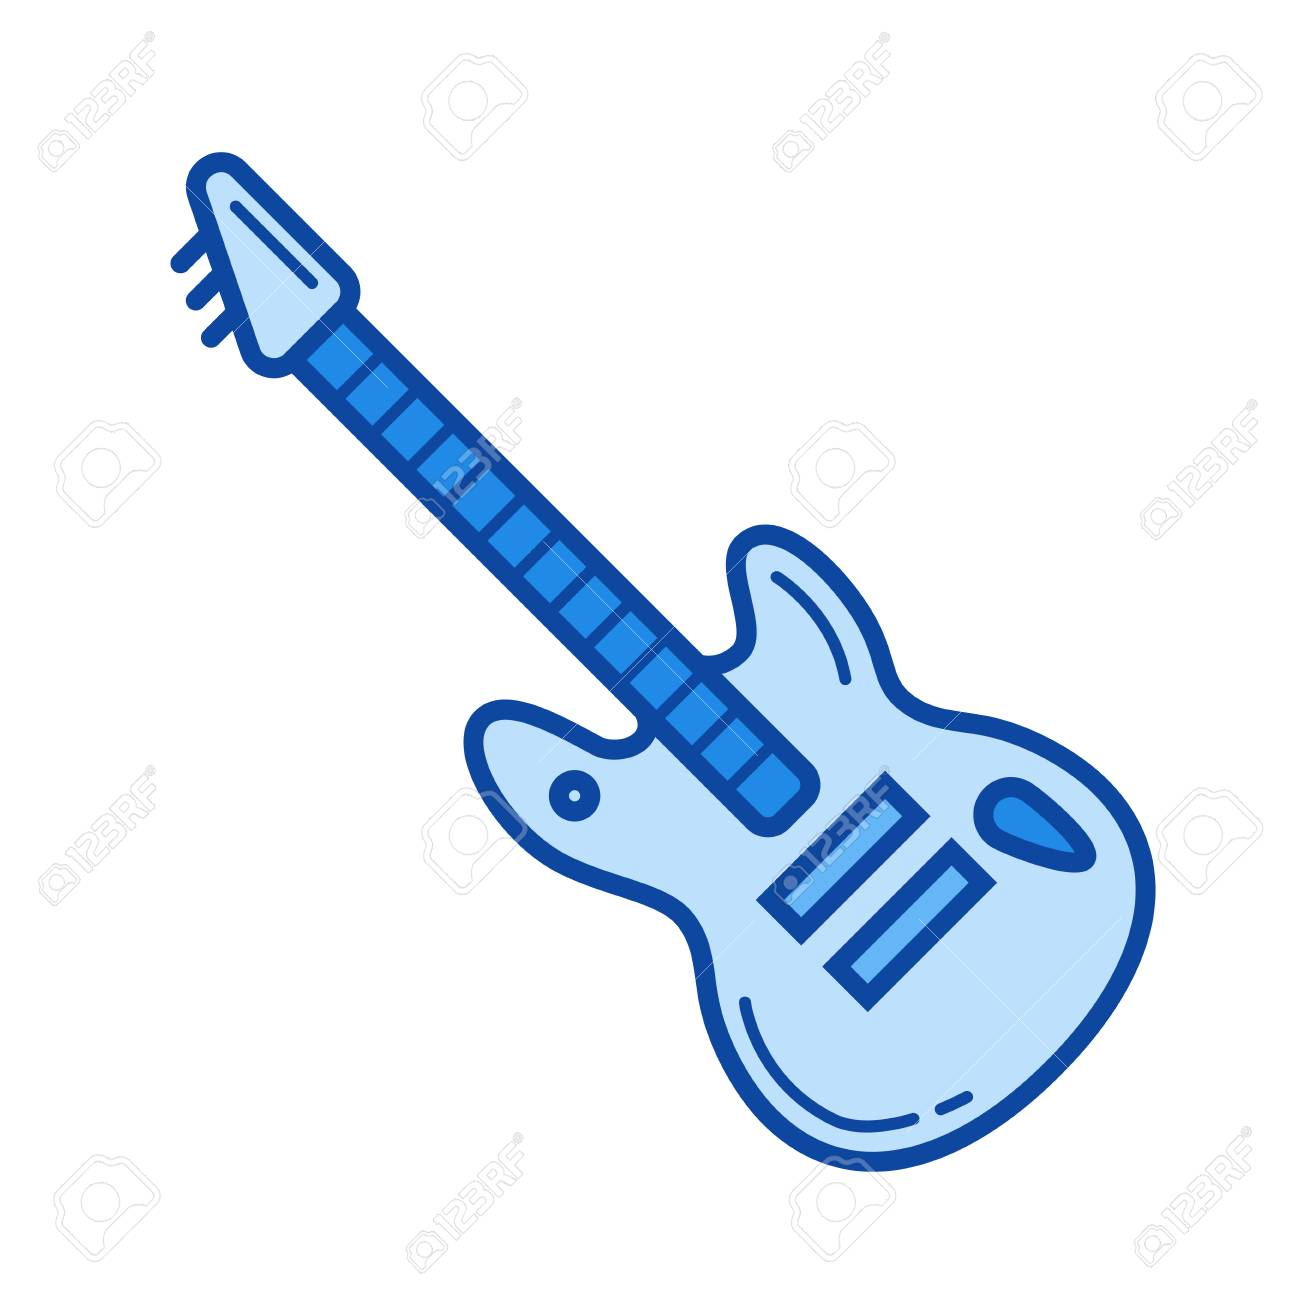 Rock Guitar Vector Line Icon Isolated On White Background For Infographic